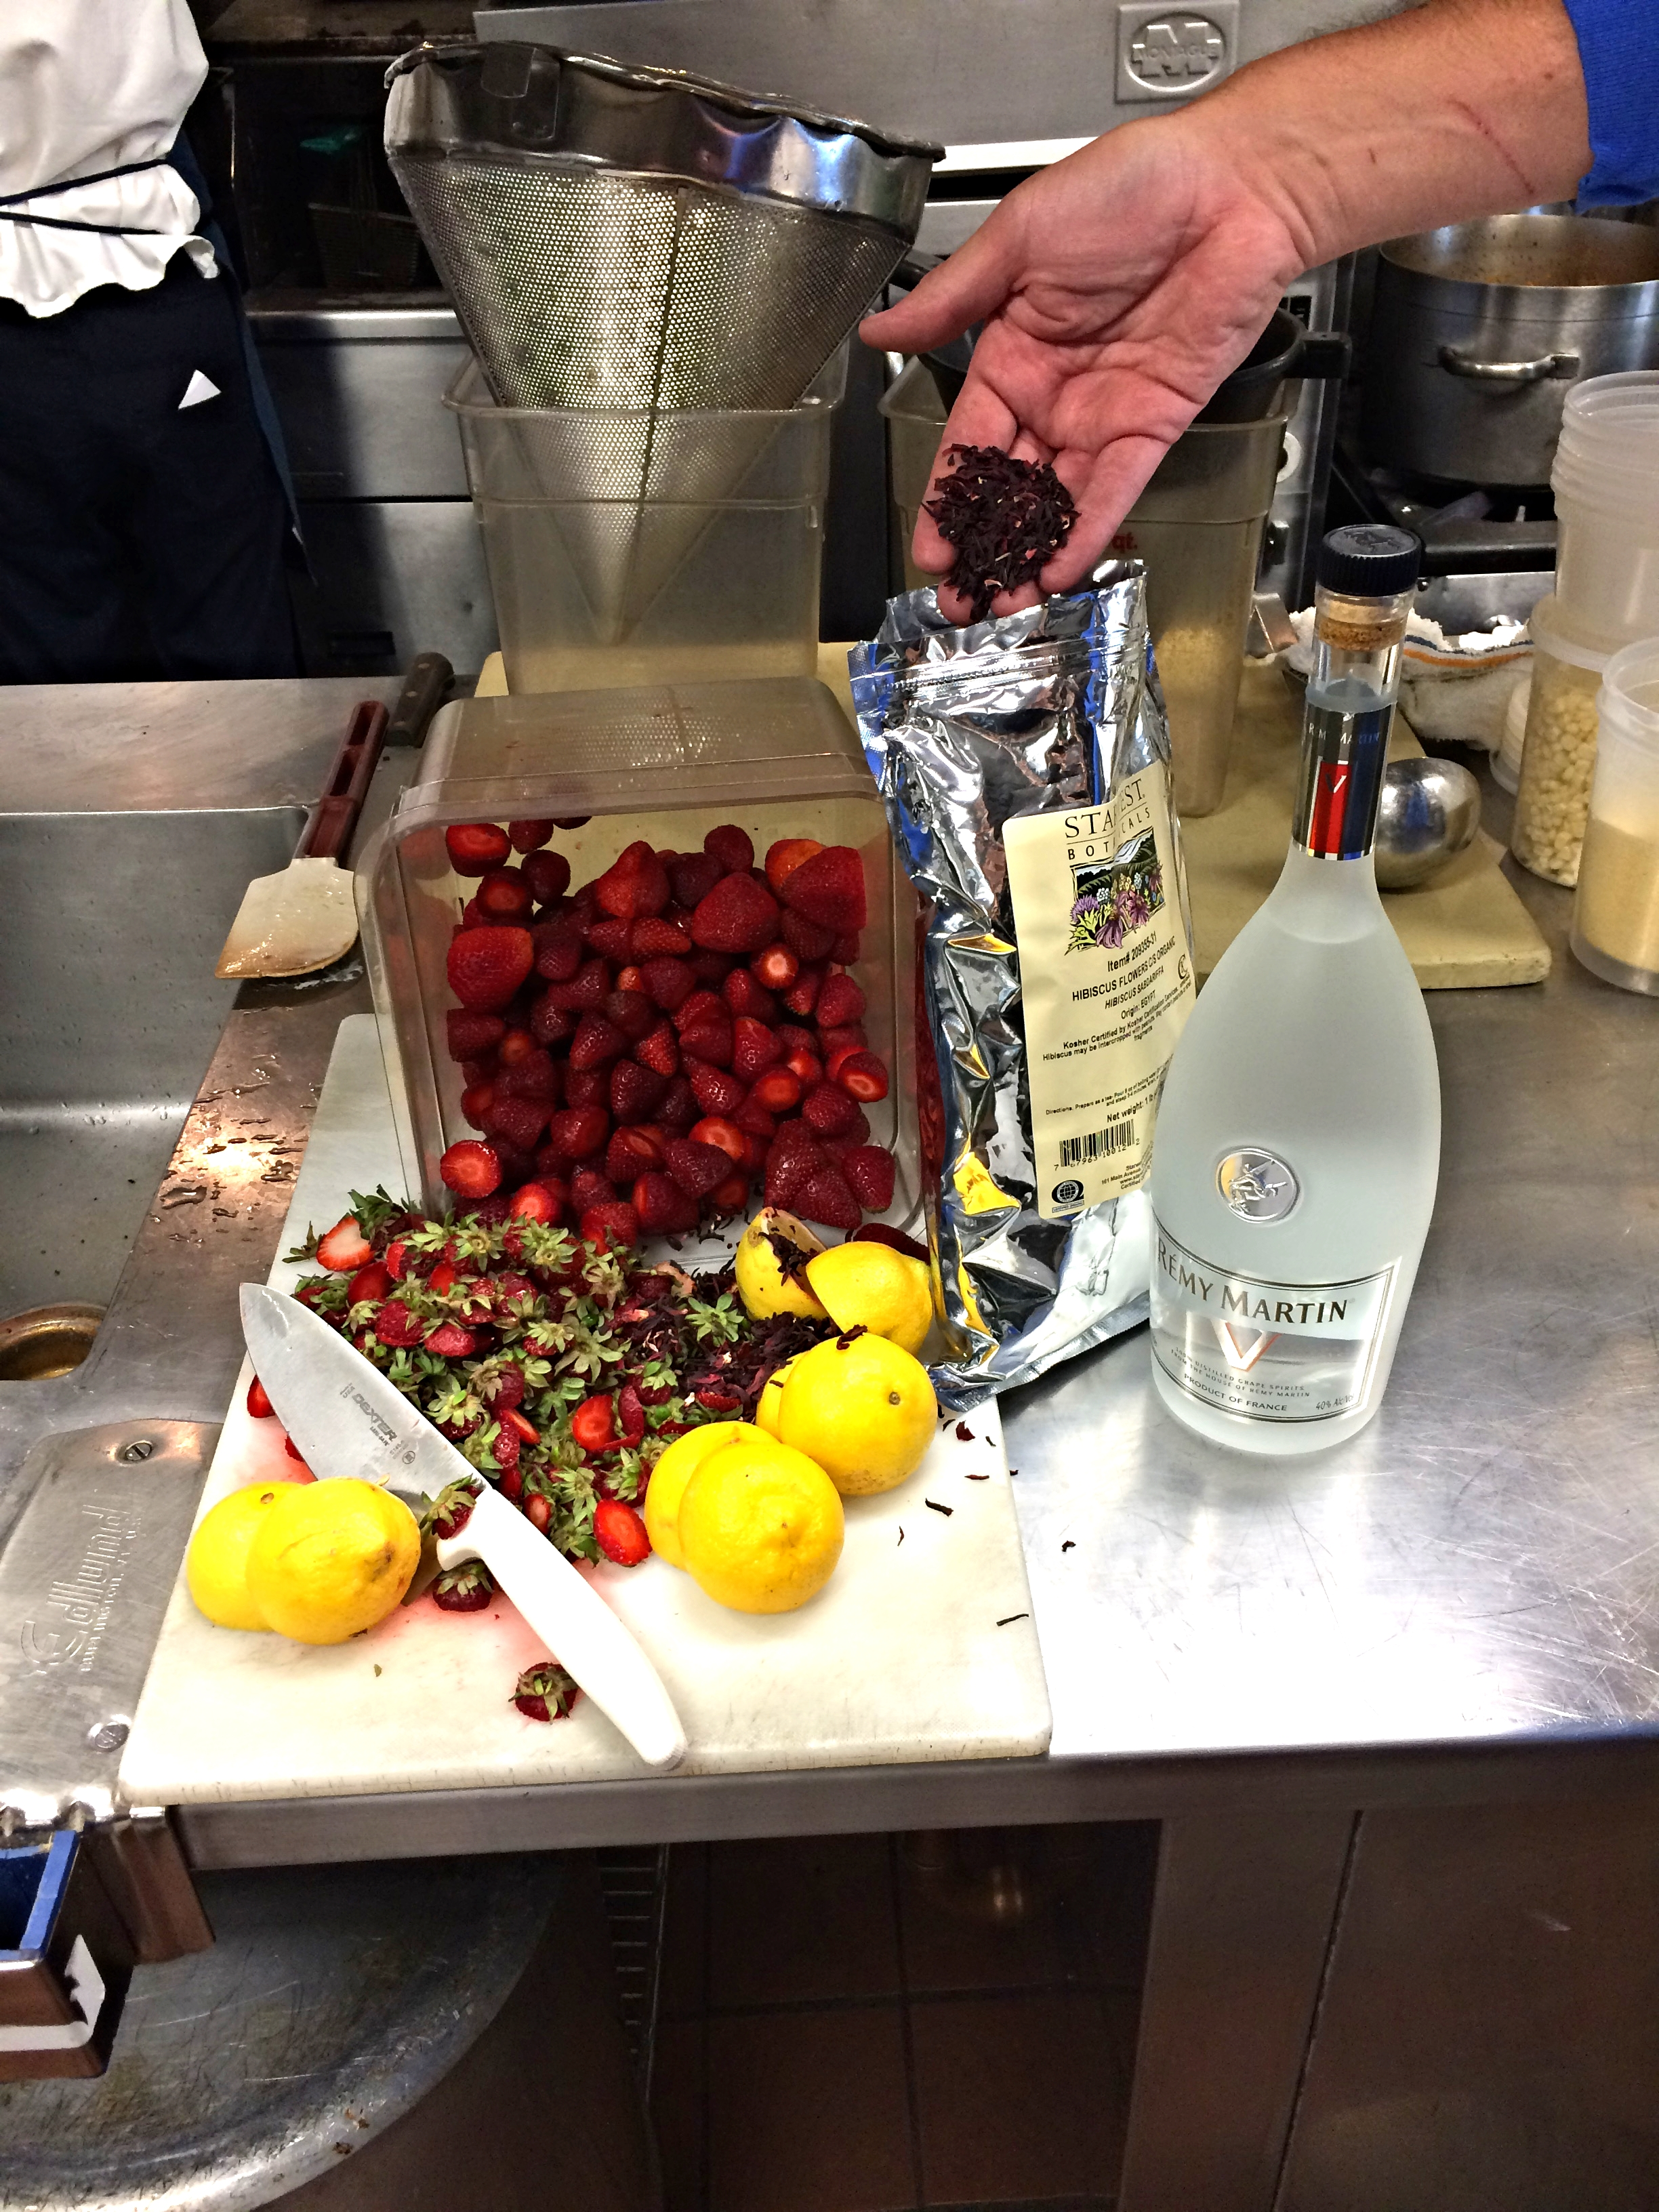 Ingredients for Joe's Strawberry &Hibiscus tincture: strawberries, lemon, Rémy Martin V and dried hibiscus.